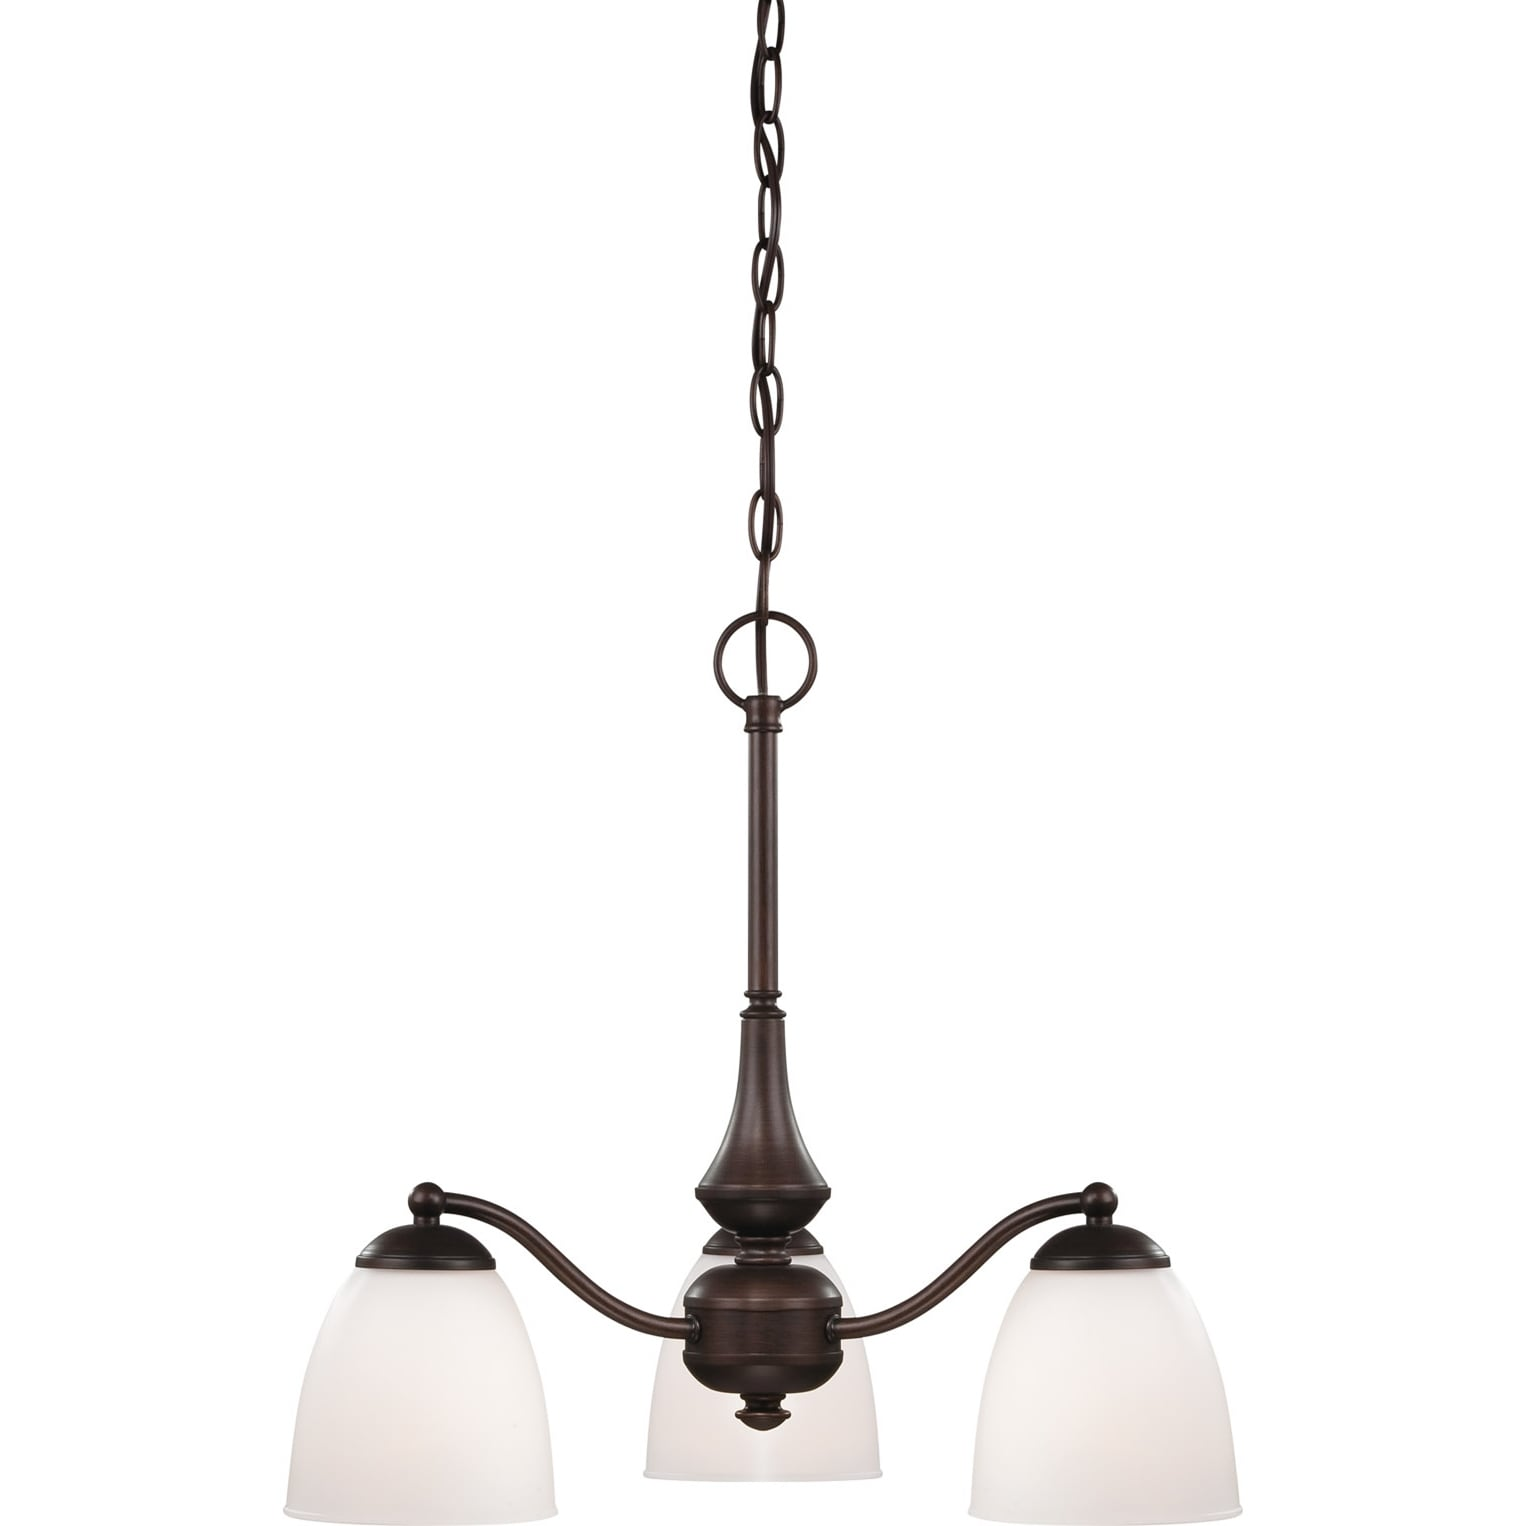 Nuvo Patton 3-light Prairie Bronze Fluorescent Chandelier